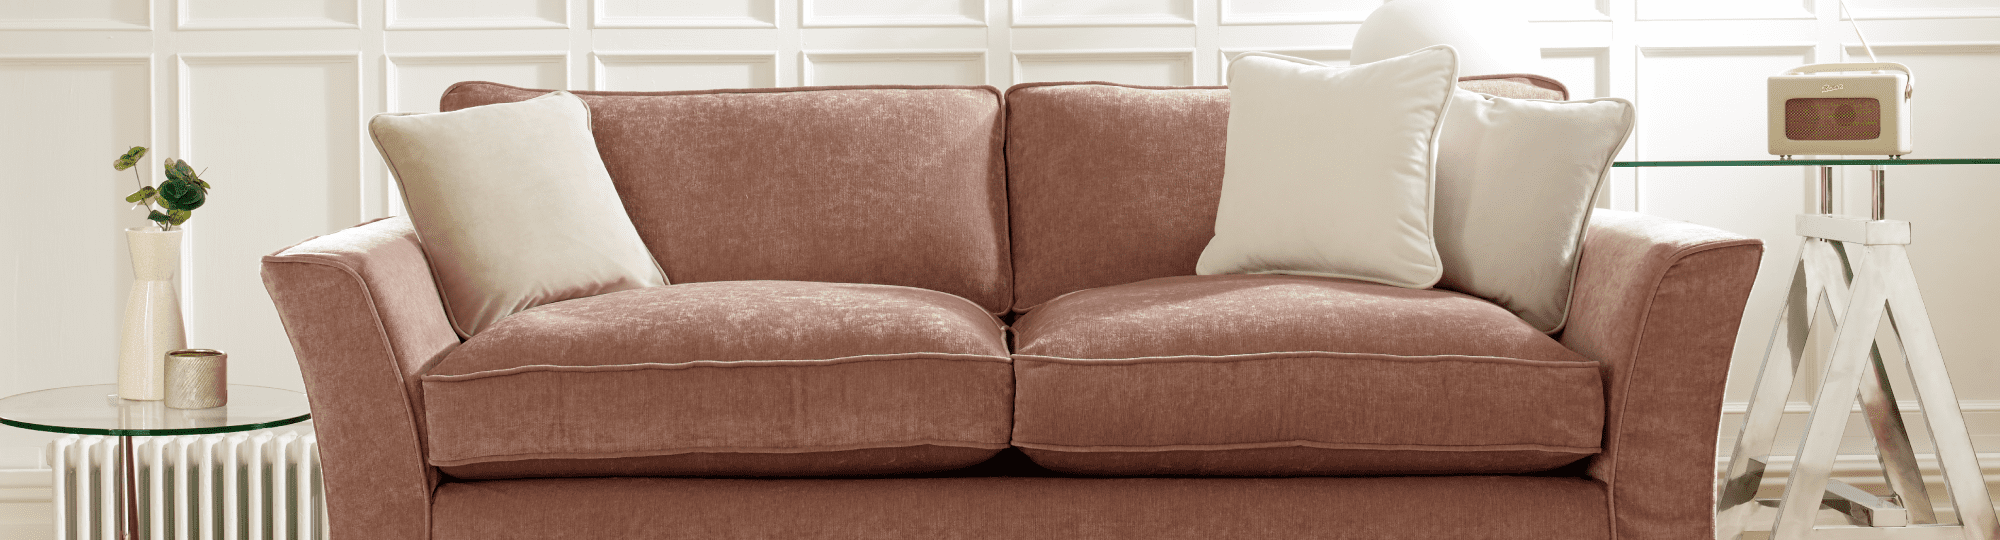 corner sofa with cover